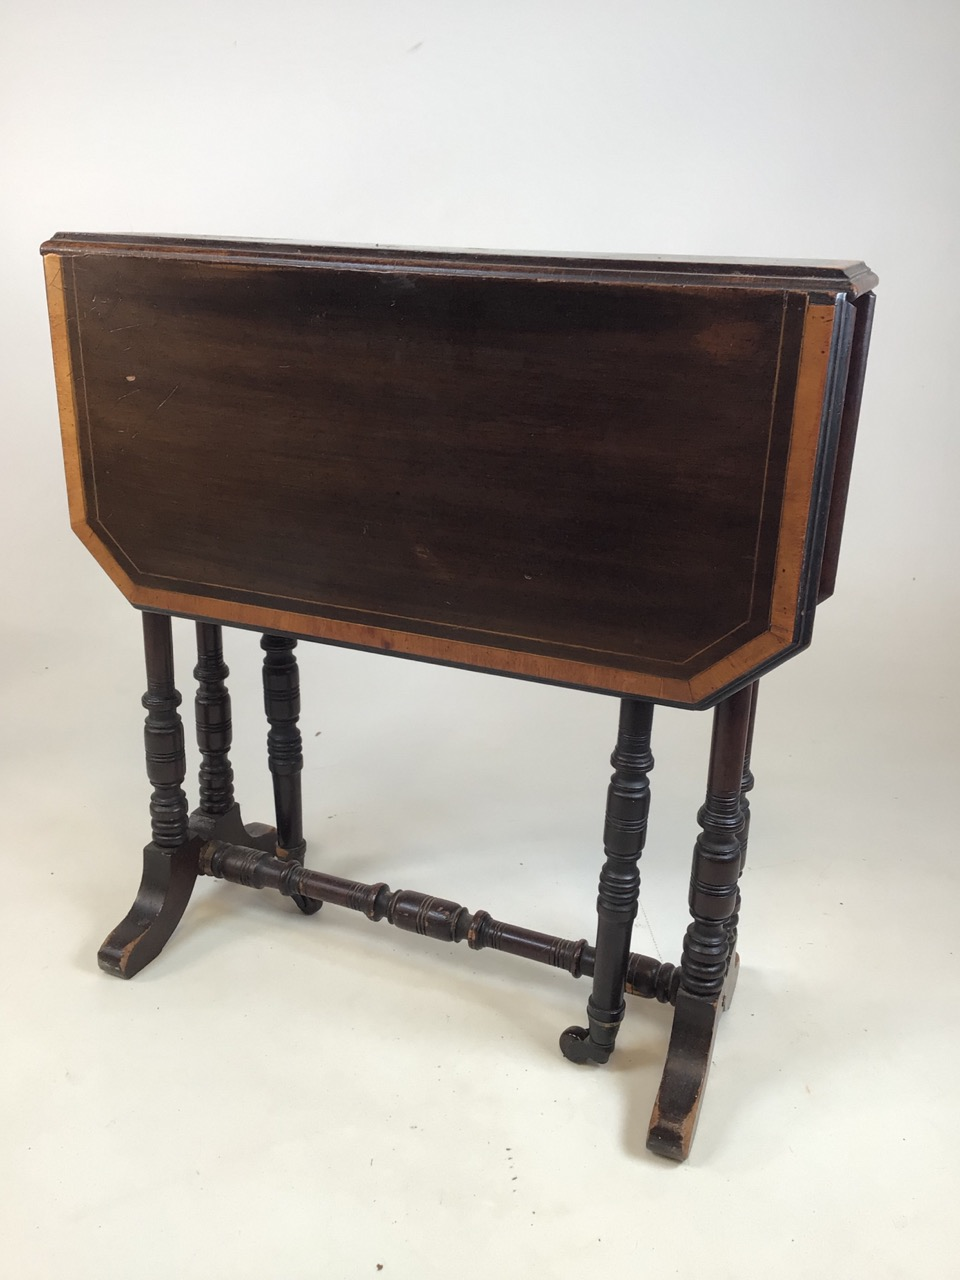 A small Edwardian mahogany inlaid Sutherland table with turned legs and stretcher with ceramic